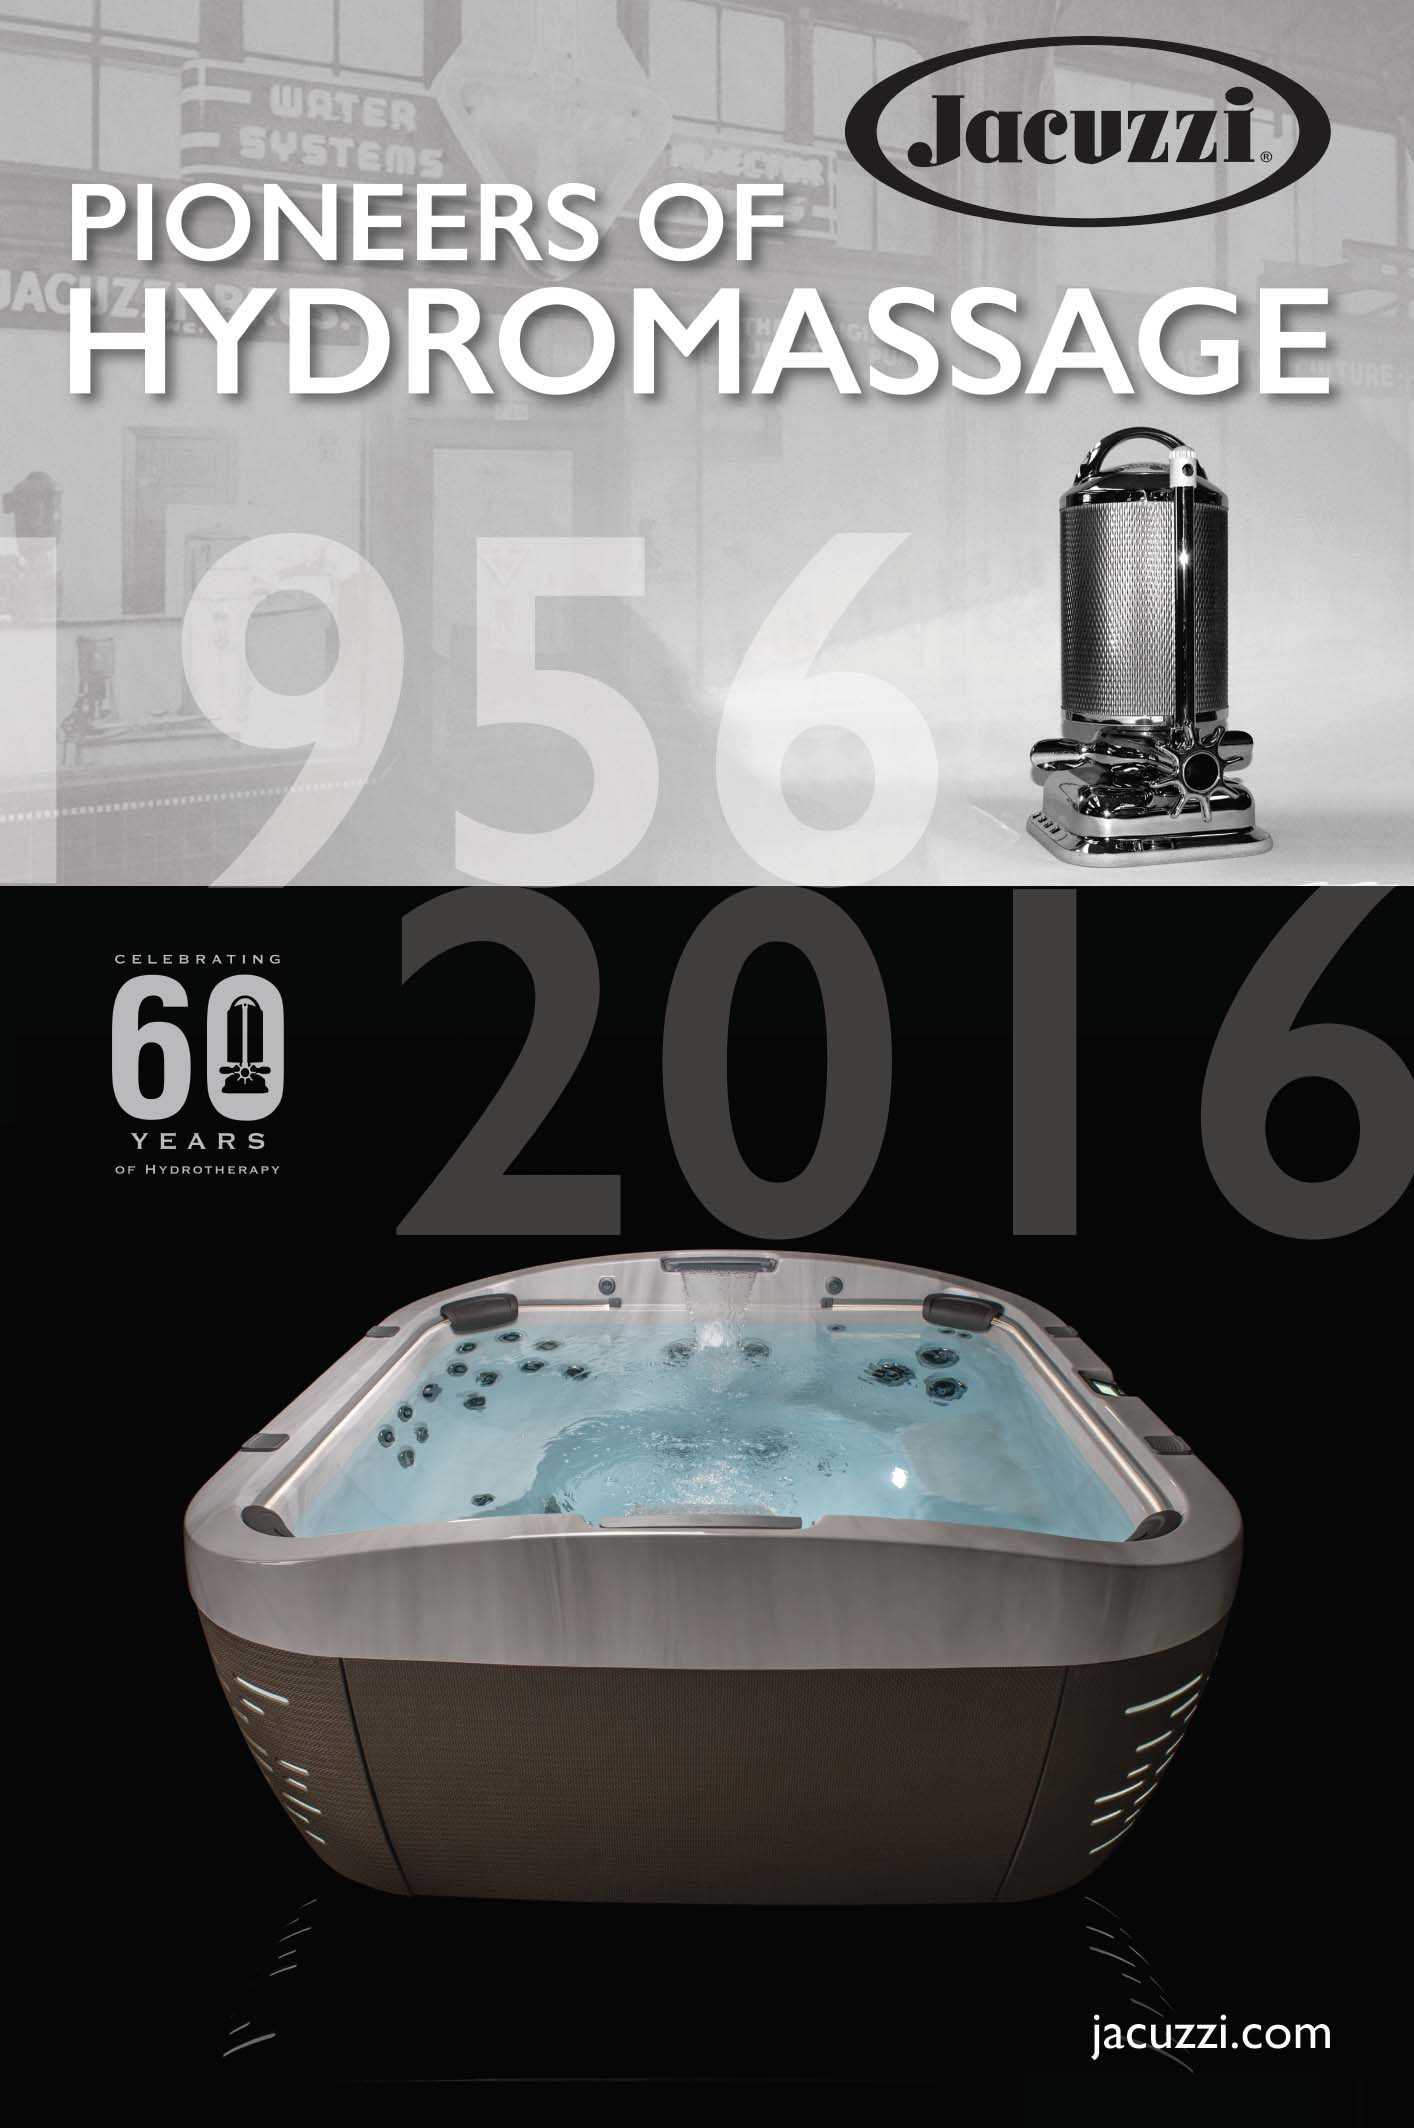 Jacuzzi® Hot Tubs Celebrates 60 Year Anniversary with Historic Promotion